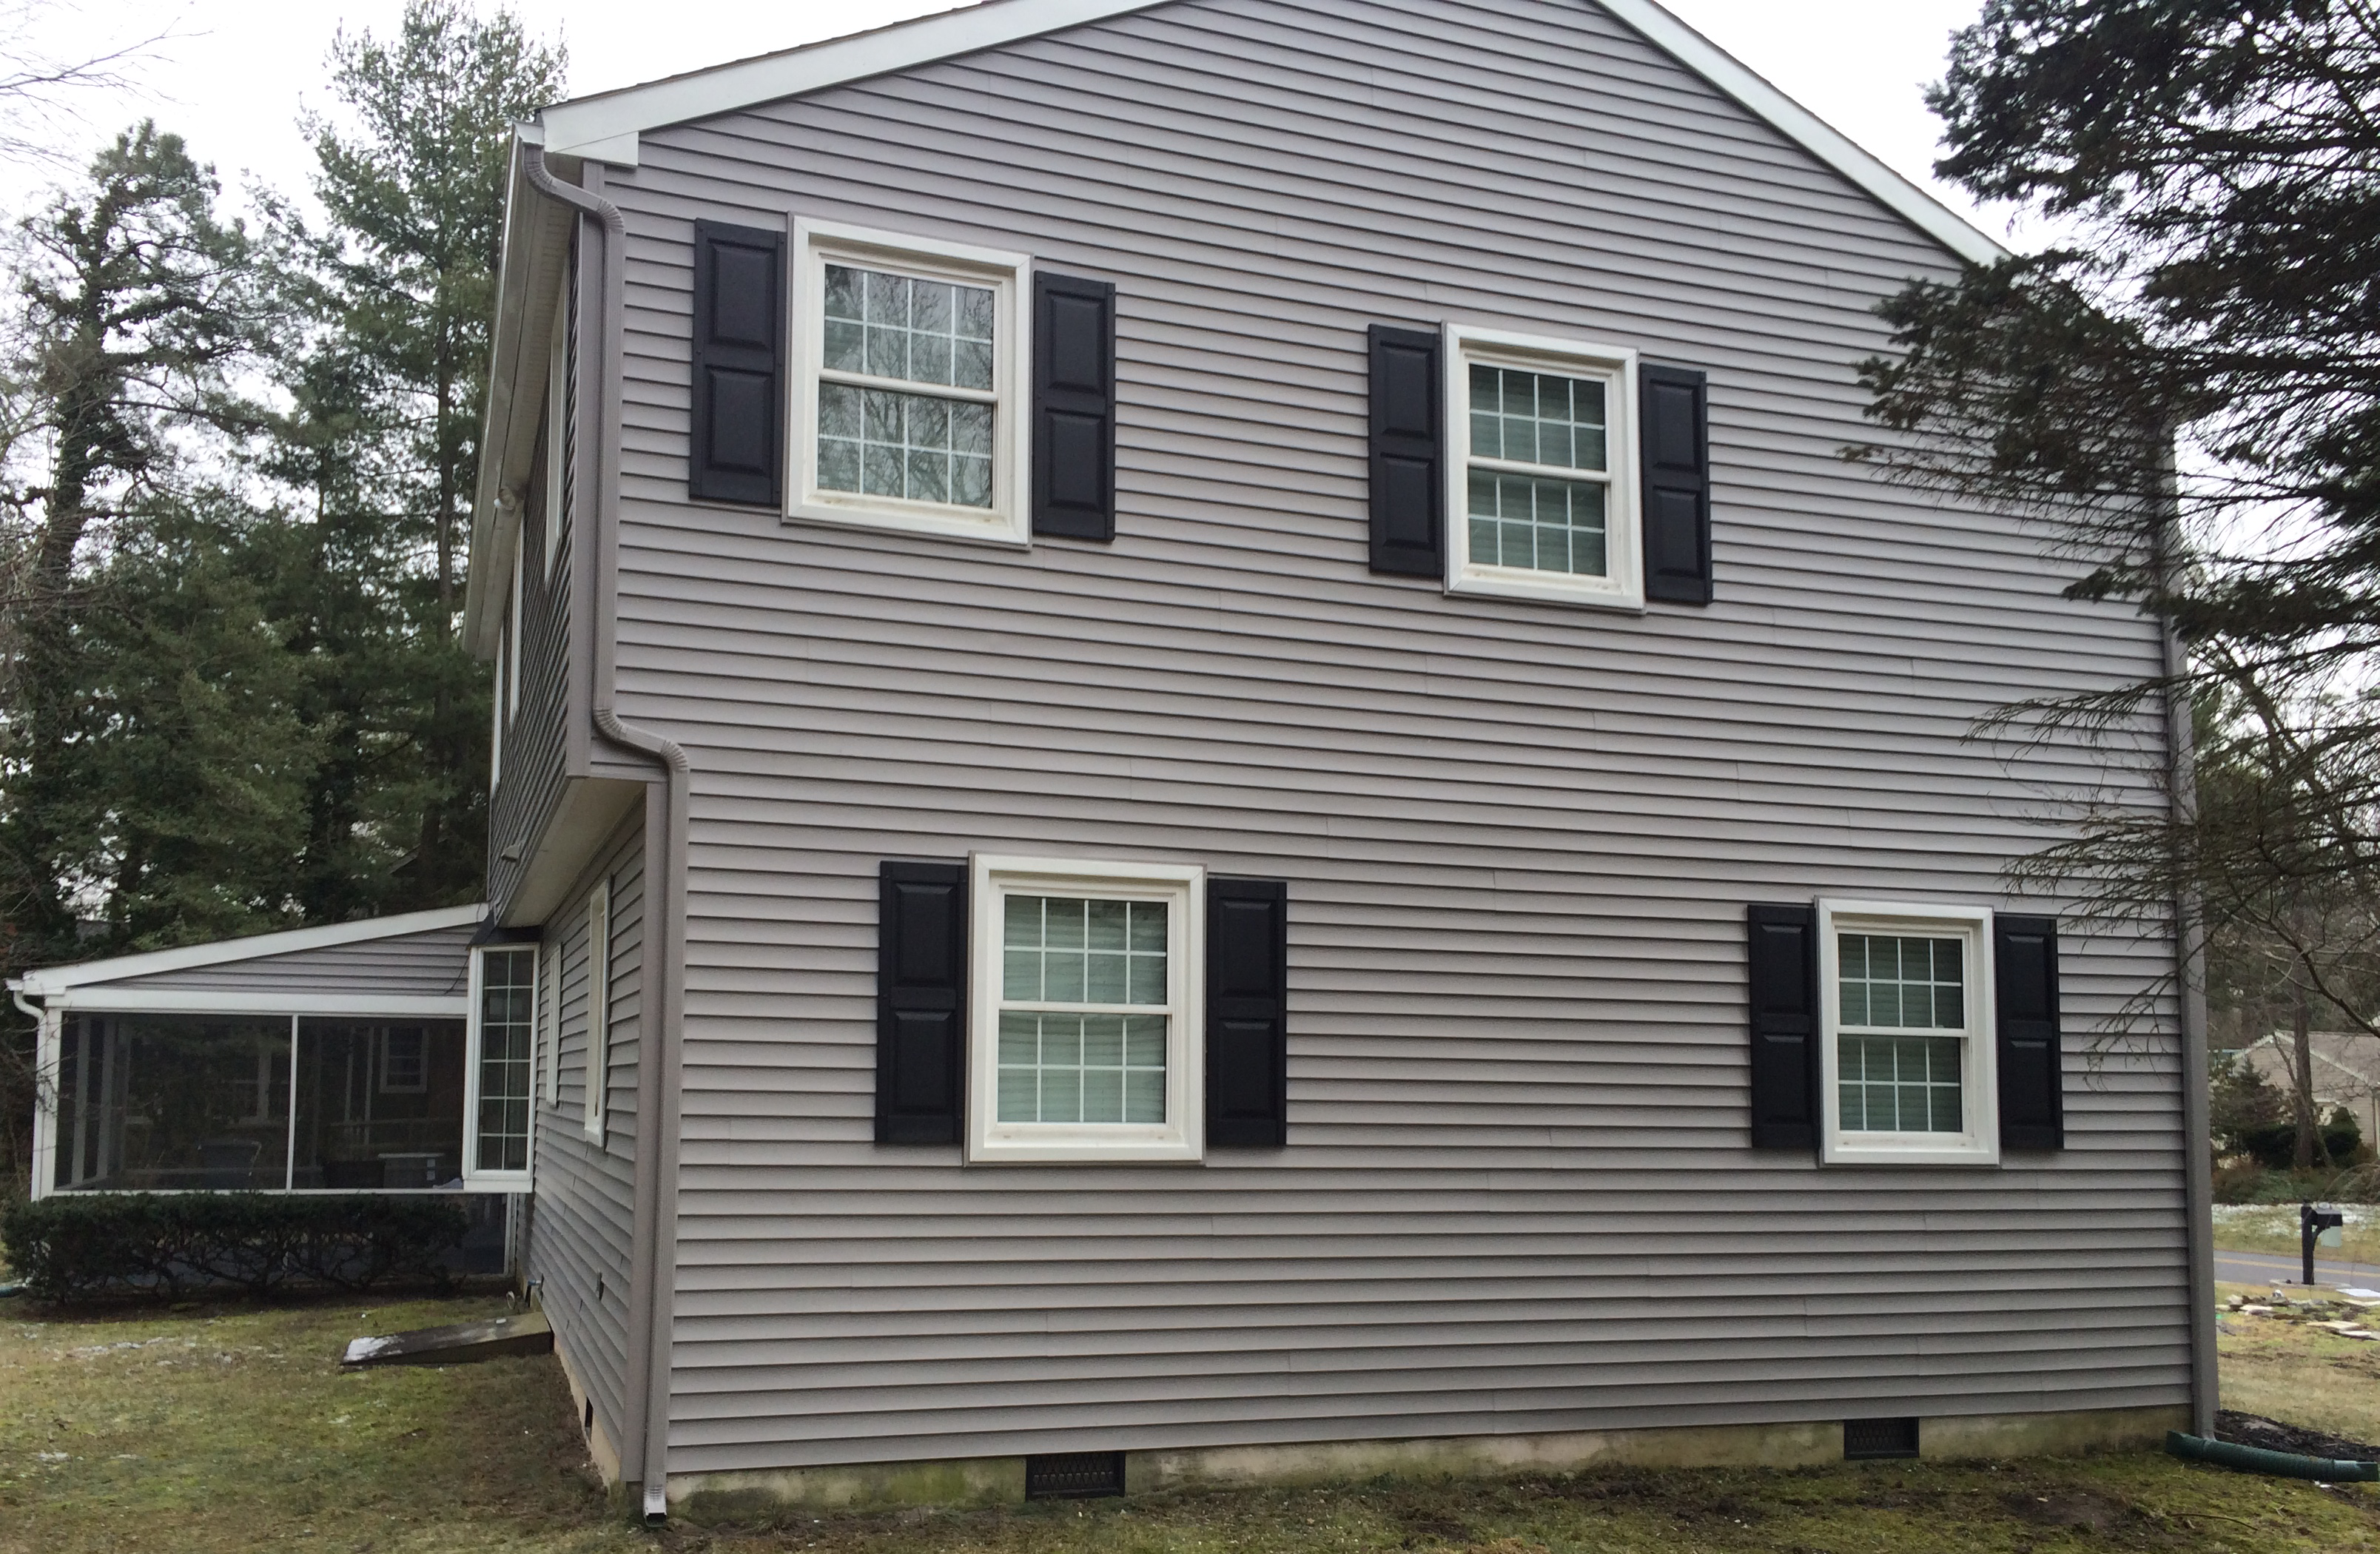 Certainteed Mainstreet Double 4 Granite Gray Siding